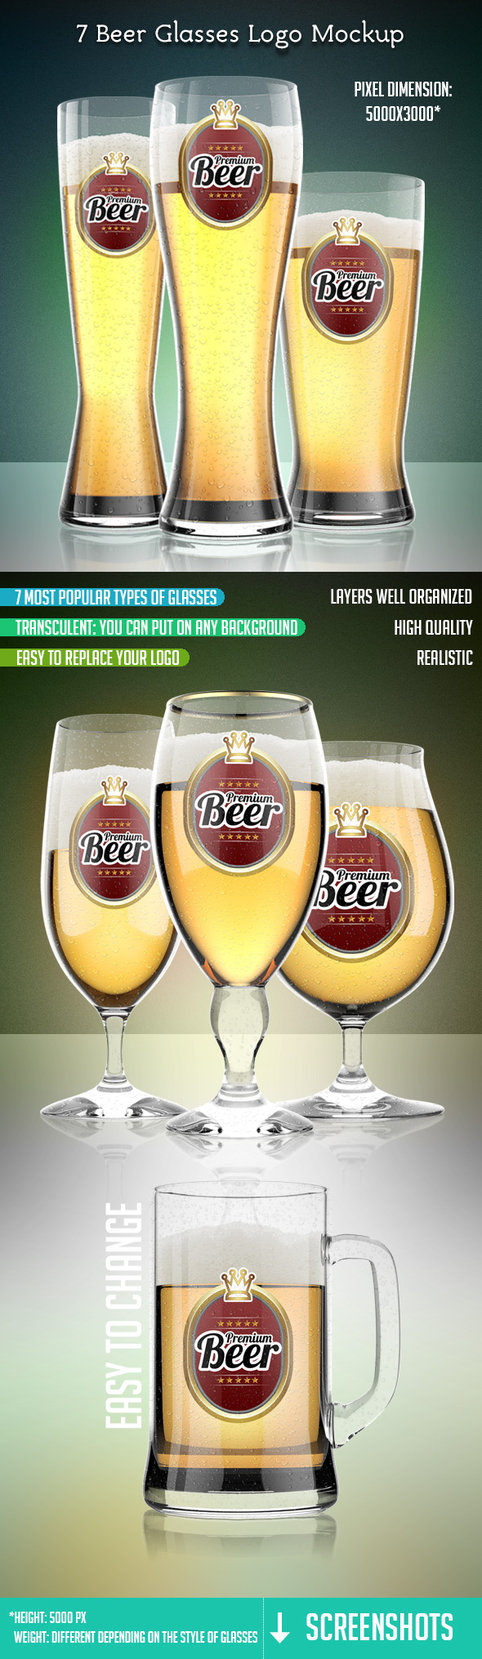 7 Beer Glass With Logo Mockup